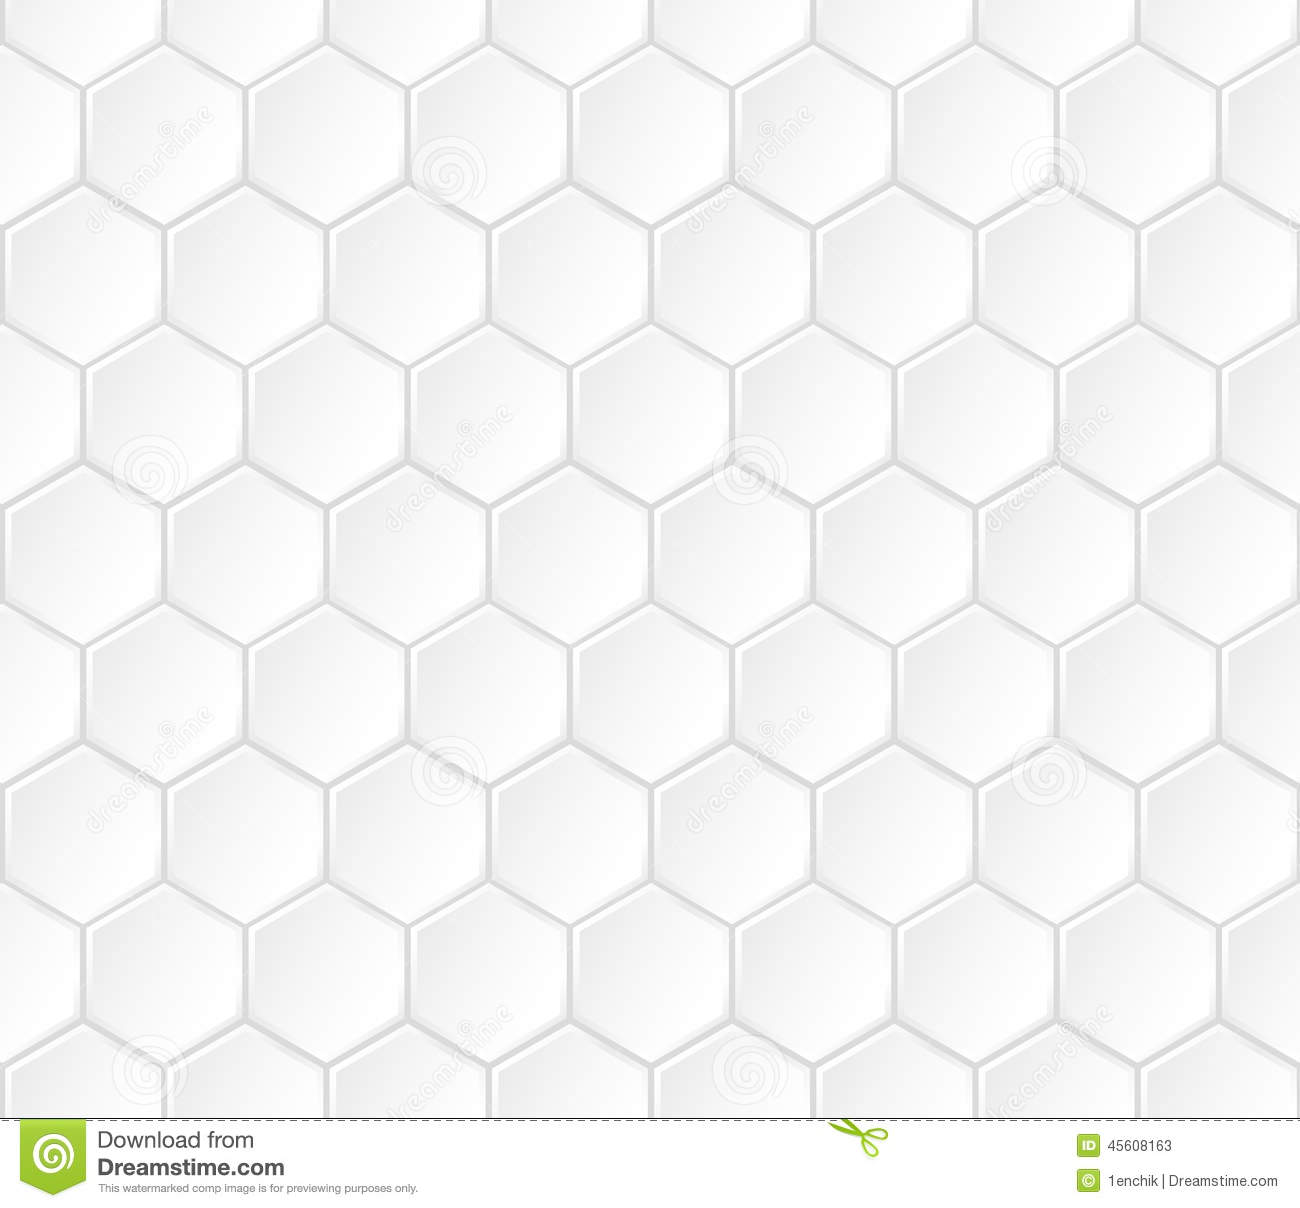 271341946275718217 further Royalty Free Stock Image Simple Geometric Vector Seamless Texture Image25282556 moreover Mosaic Sunflower furthermore Stock Illustration Geometric White Hexagonal Vector Seamless Pattern Tile Image45608163 as well Hexagon. on mosaic tile designs